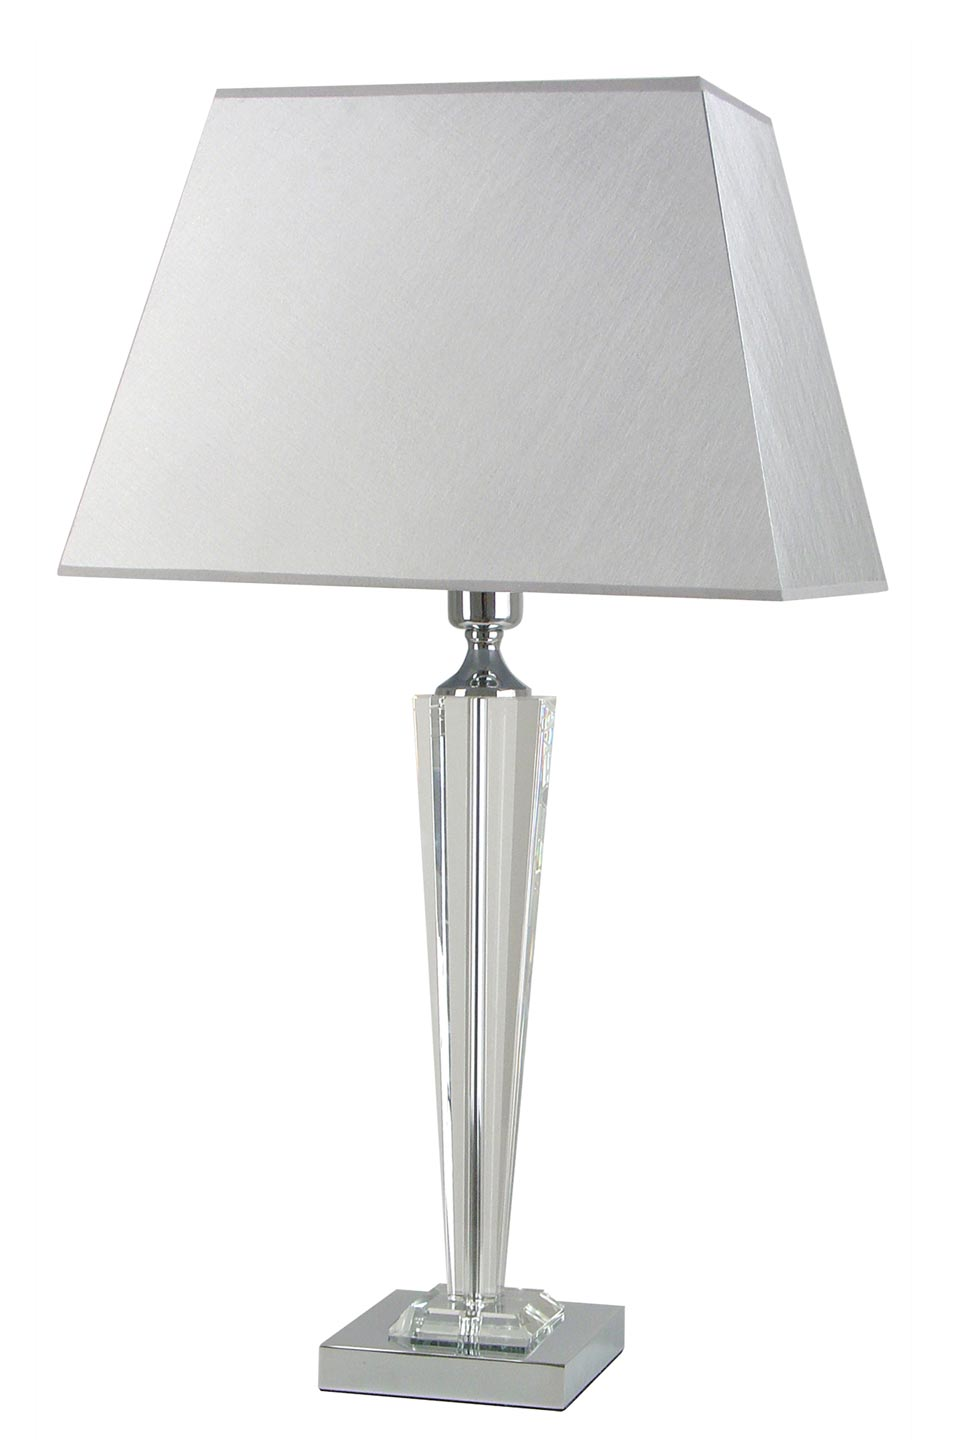 Large optic glass and gray fabric lamp Celya Ag. Le Dauphin.